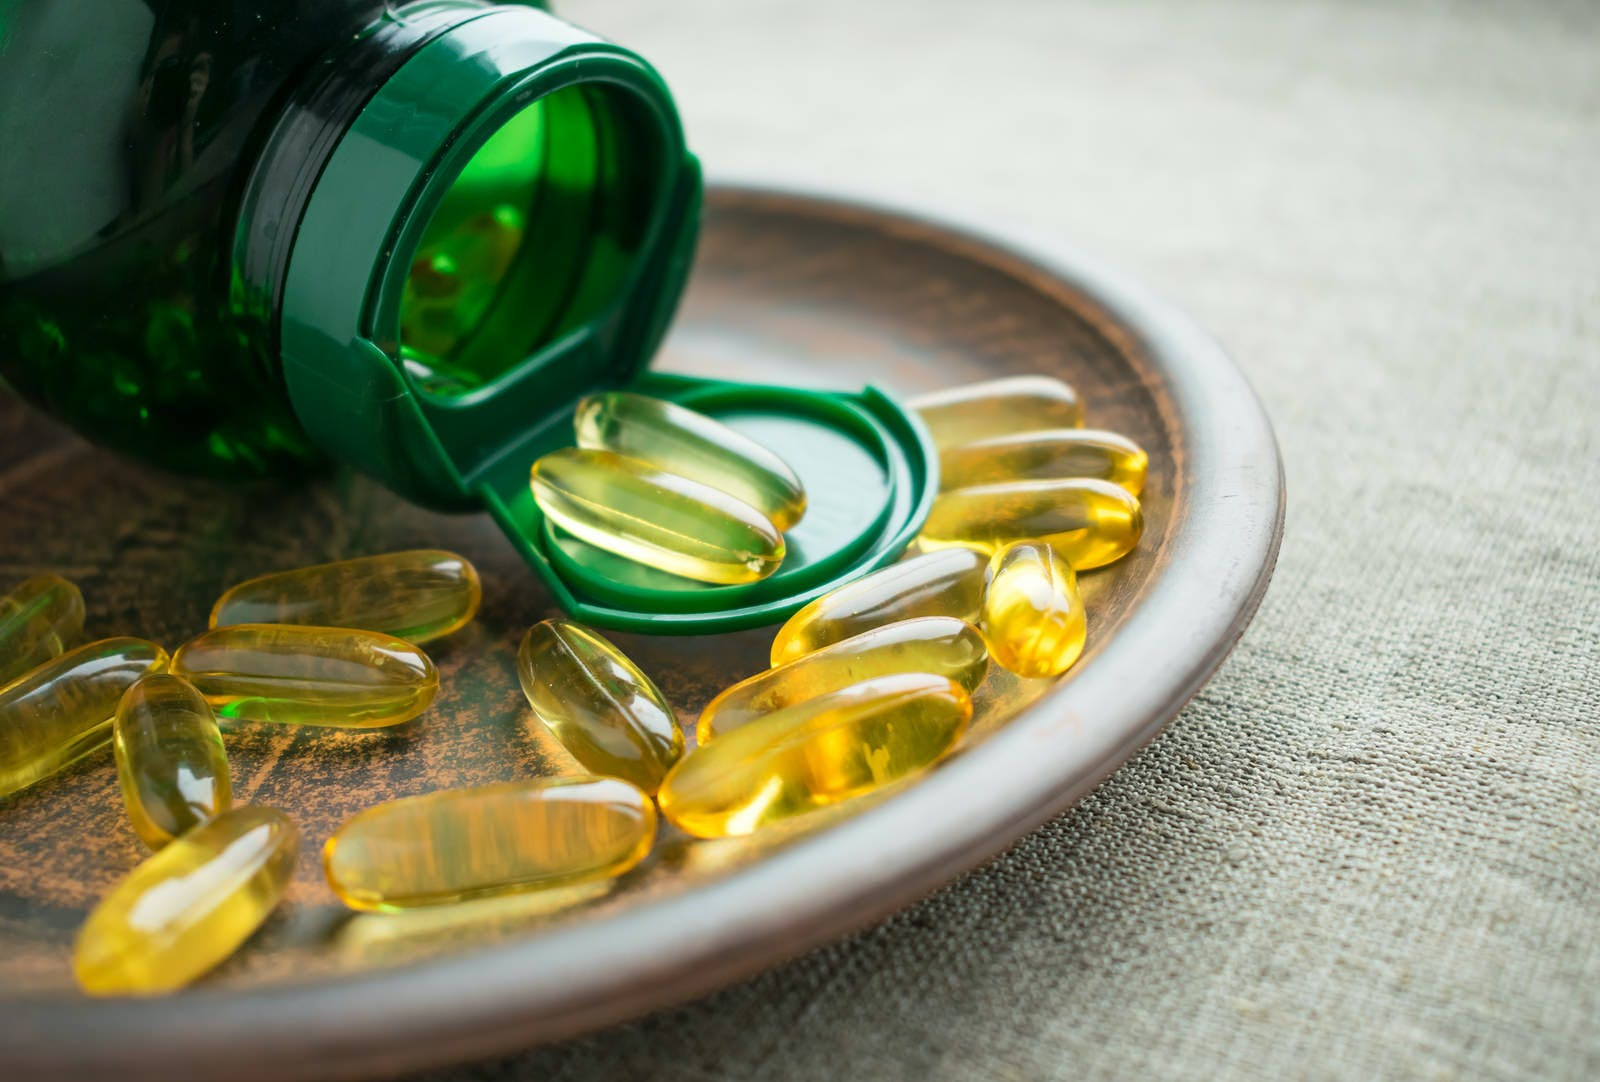 Yellow vitamin D3 (cholecalciferol) gelatine capsules and green bottle on clay plate on burlap background. Vitamin D3 (cholecalciferol) nutrient  beneficial for supporting bone health